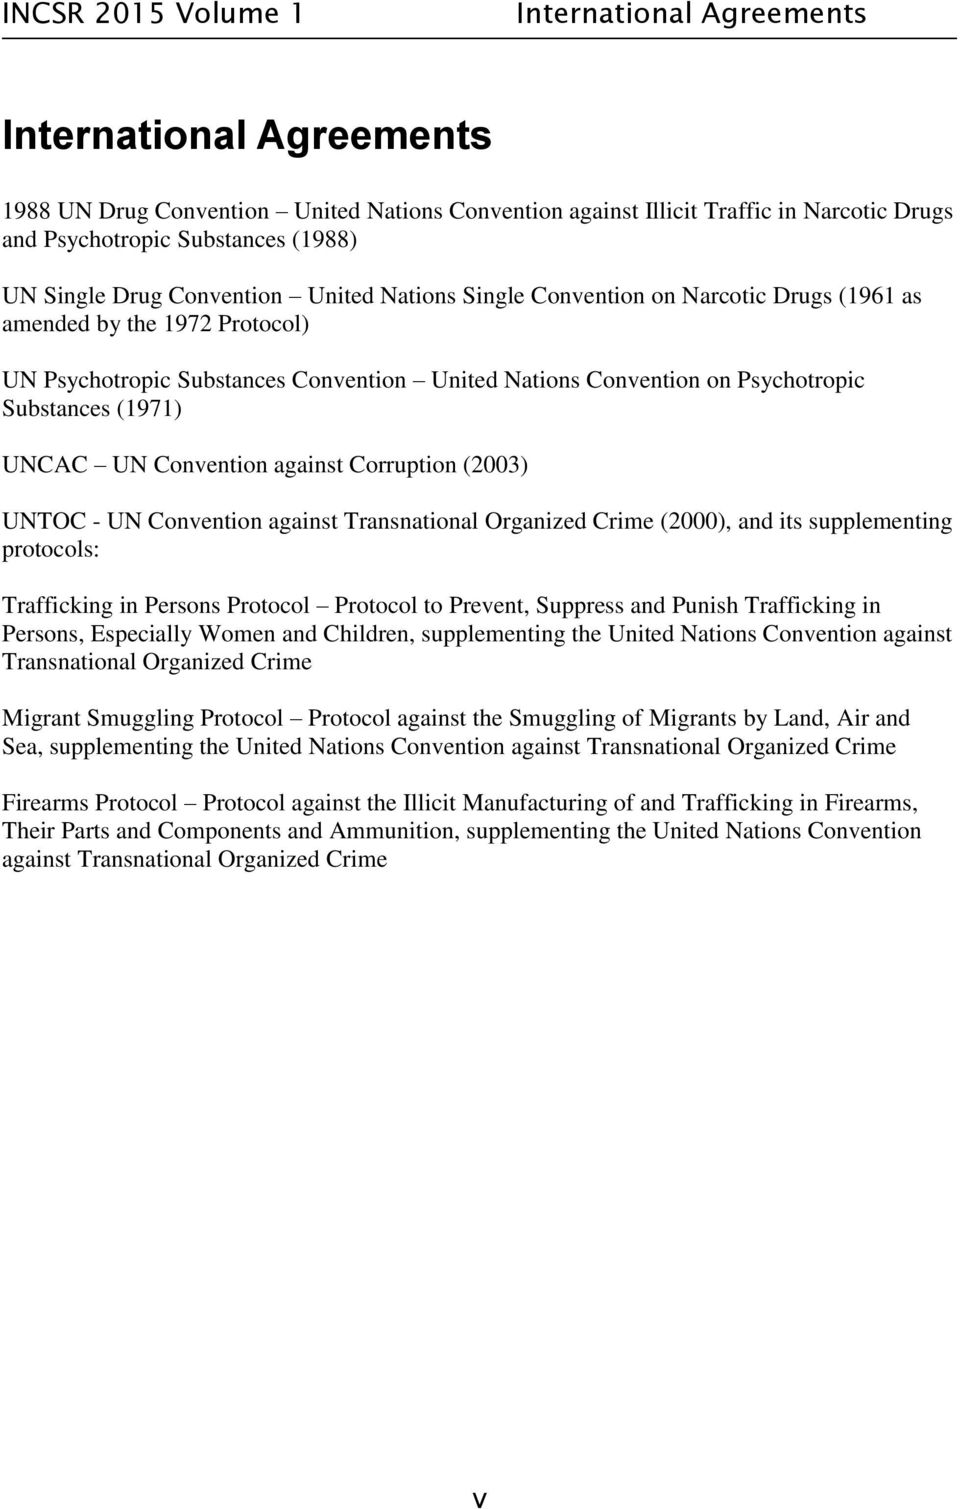 UNCAC UN Convention against Corruption (2003) UNTOC - UN Convention against Transnational Organized Crime (2000), and its supplementing protocols: Trafficking in Persons Protocol Protocol to Prevent,